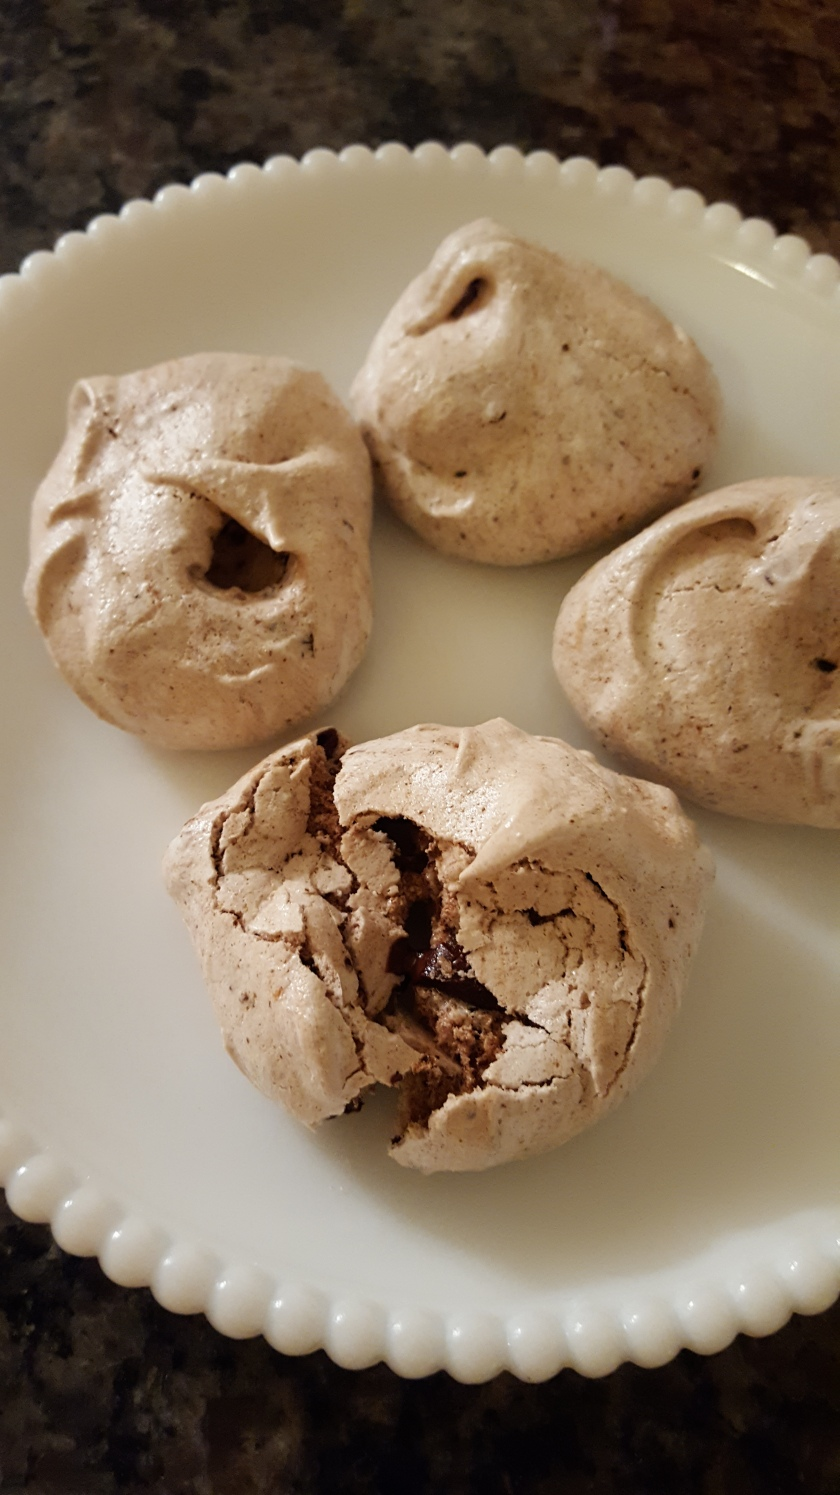 meringues made with chocolate chips and espresso